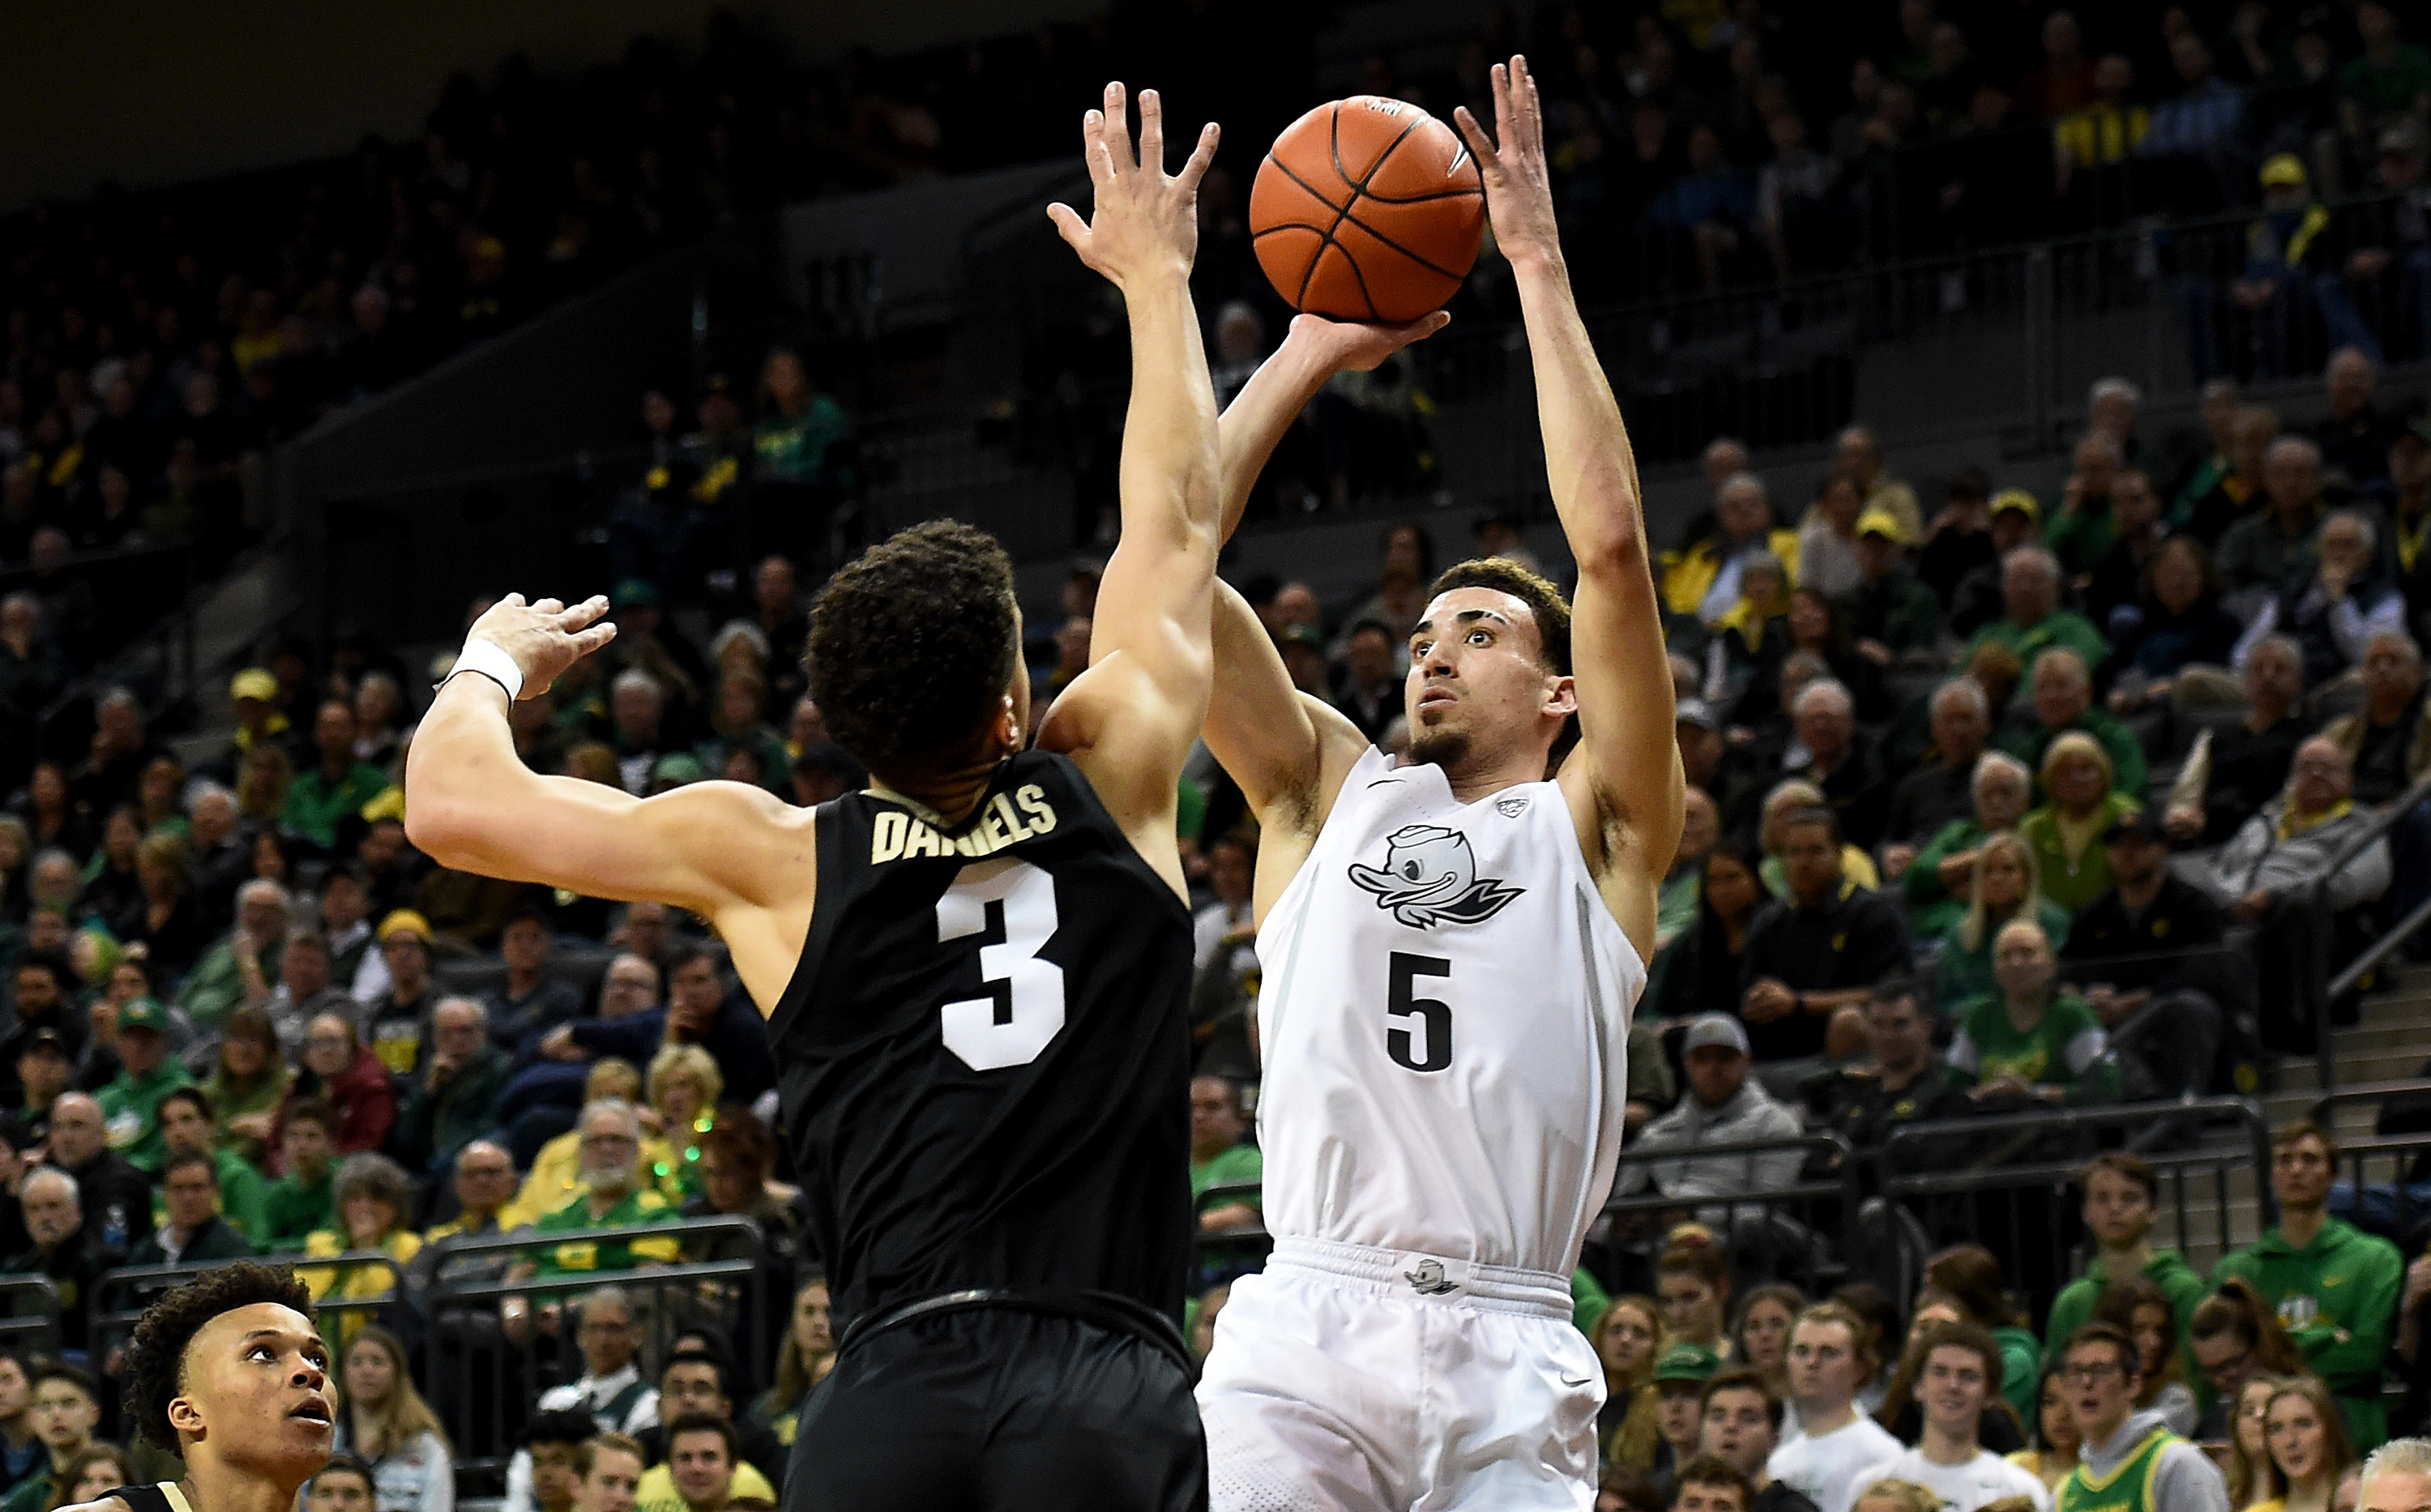 Chris Duarte of the Oregon Ducks shoots the ball over Maddox Daniels of the Colorado Buffaloes during the first half at Matthew Knight Arena on February 13, 2020 in Eugene, Oregon.